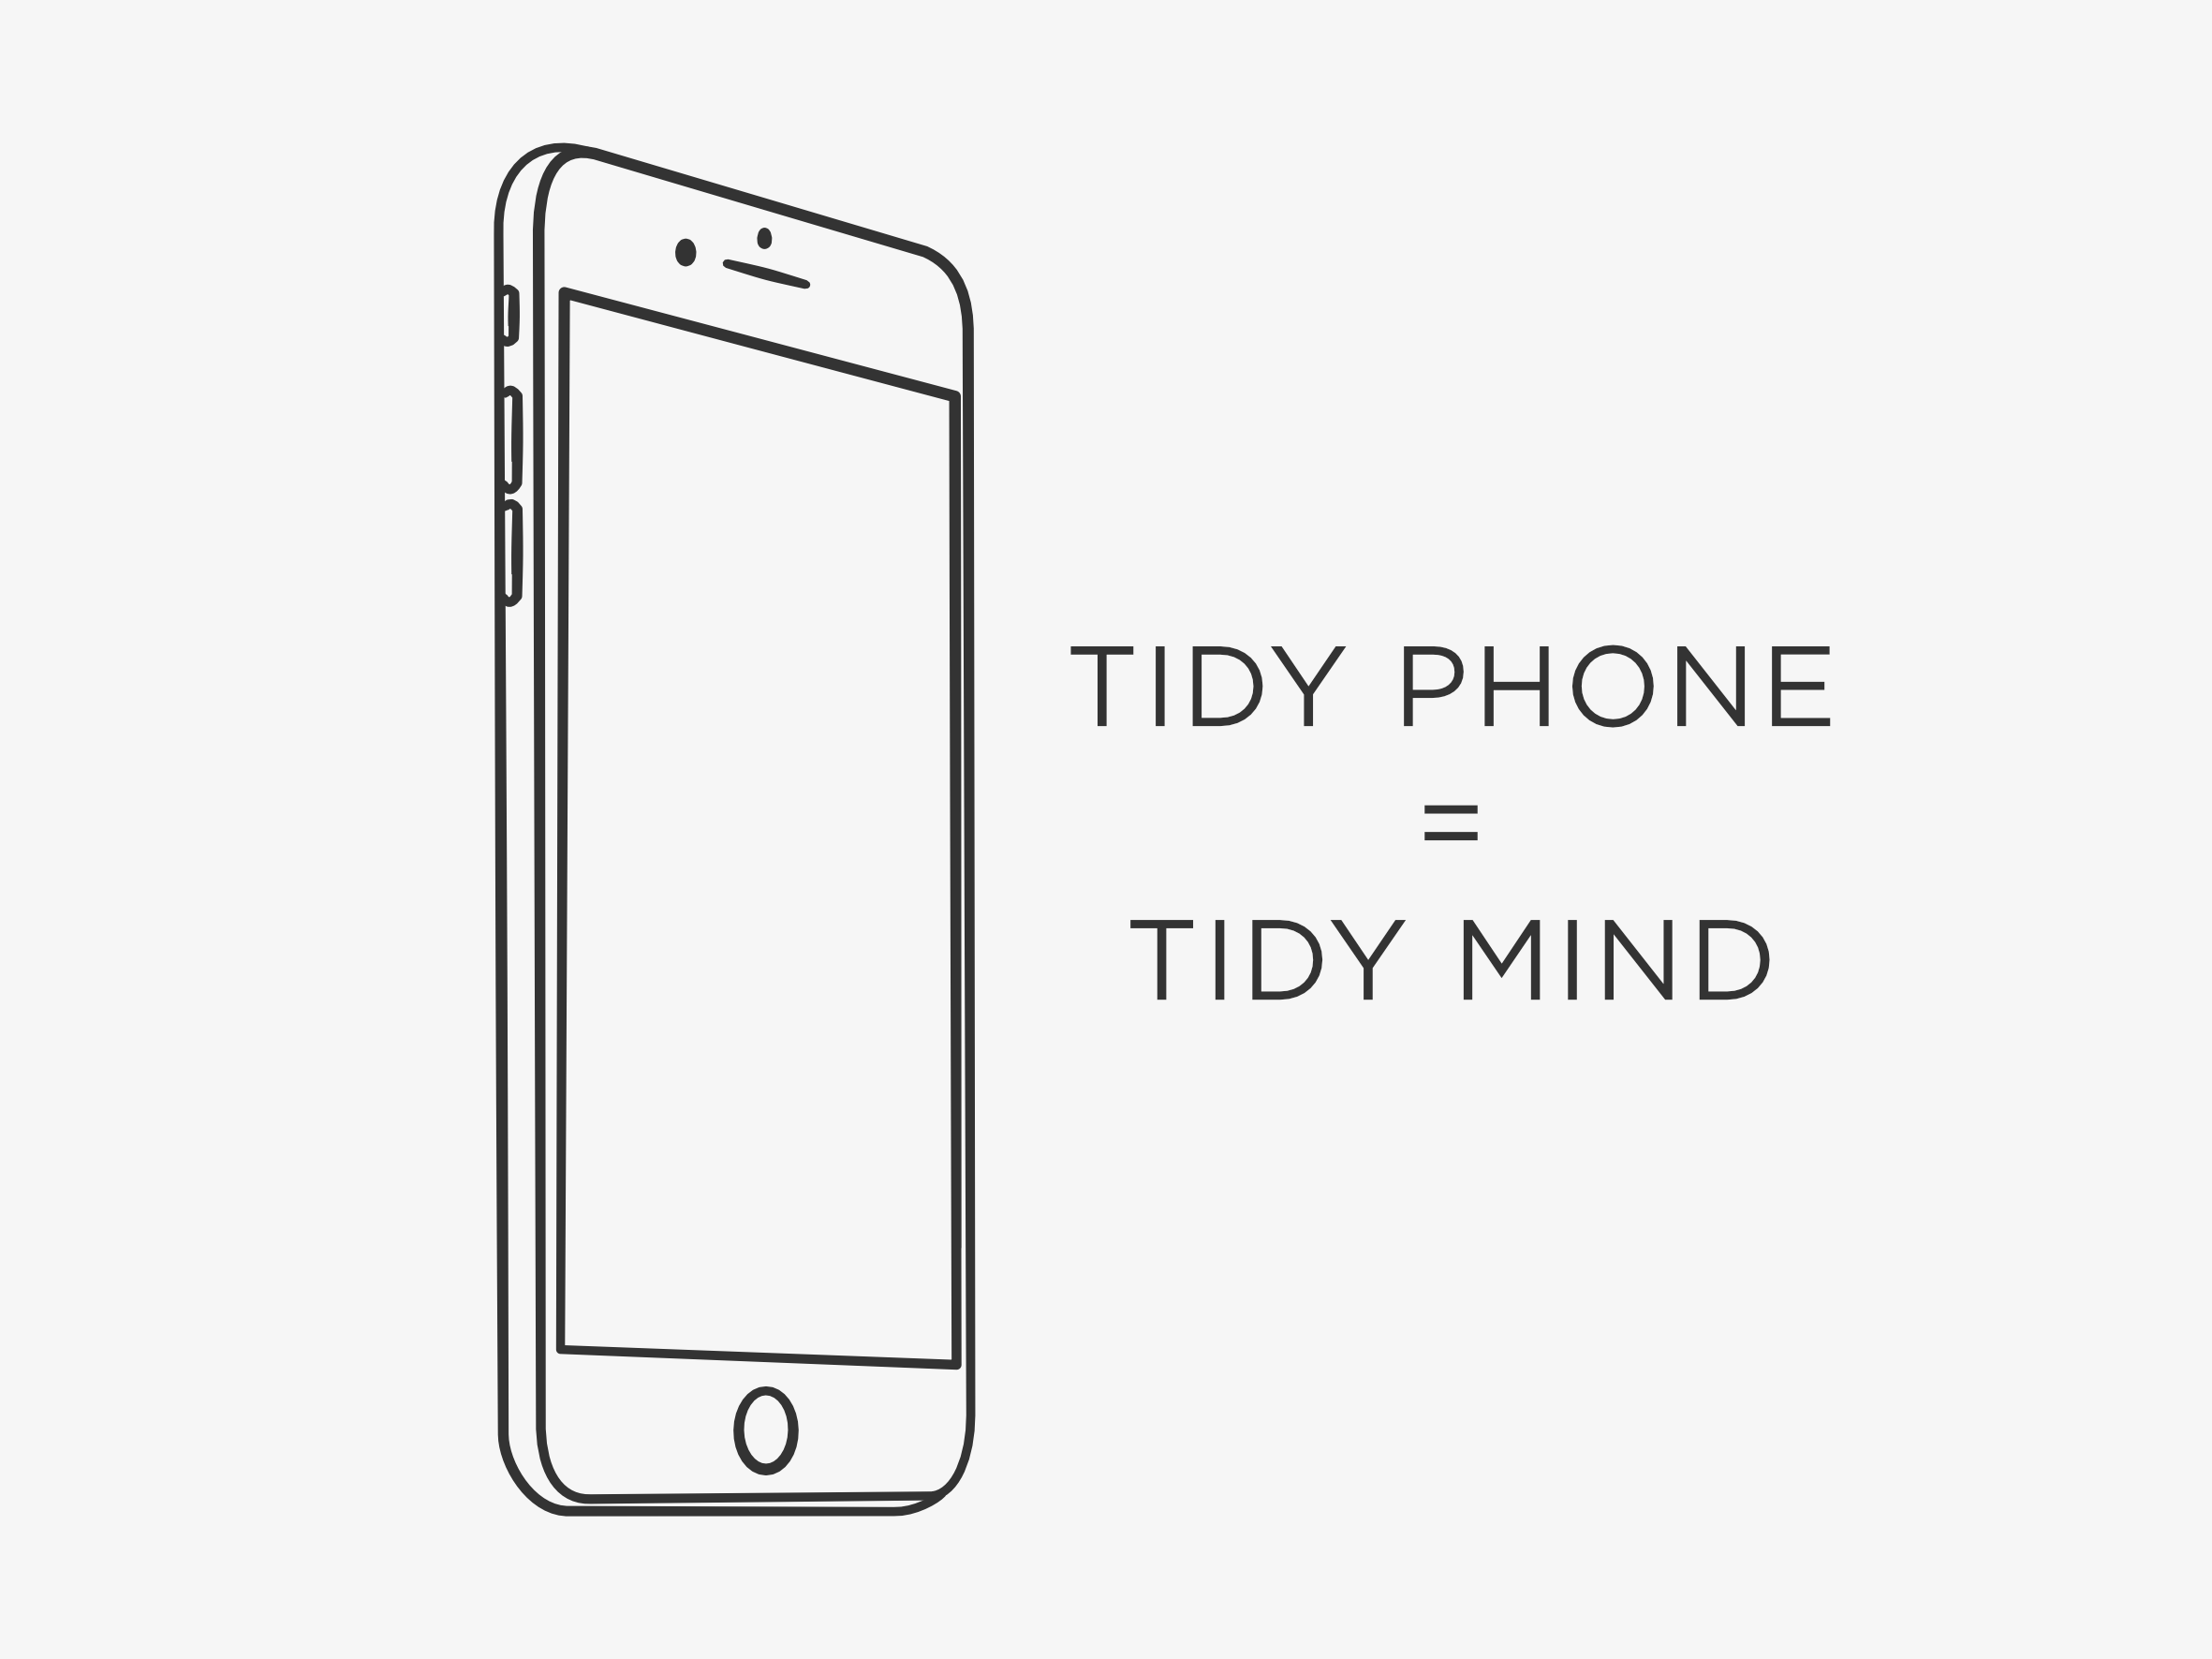 The Best Way to Organise Your Phone for Maximum Productivity